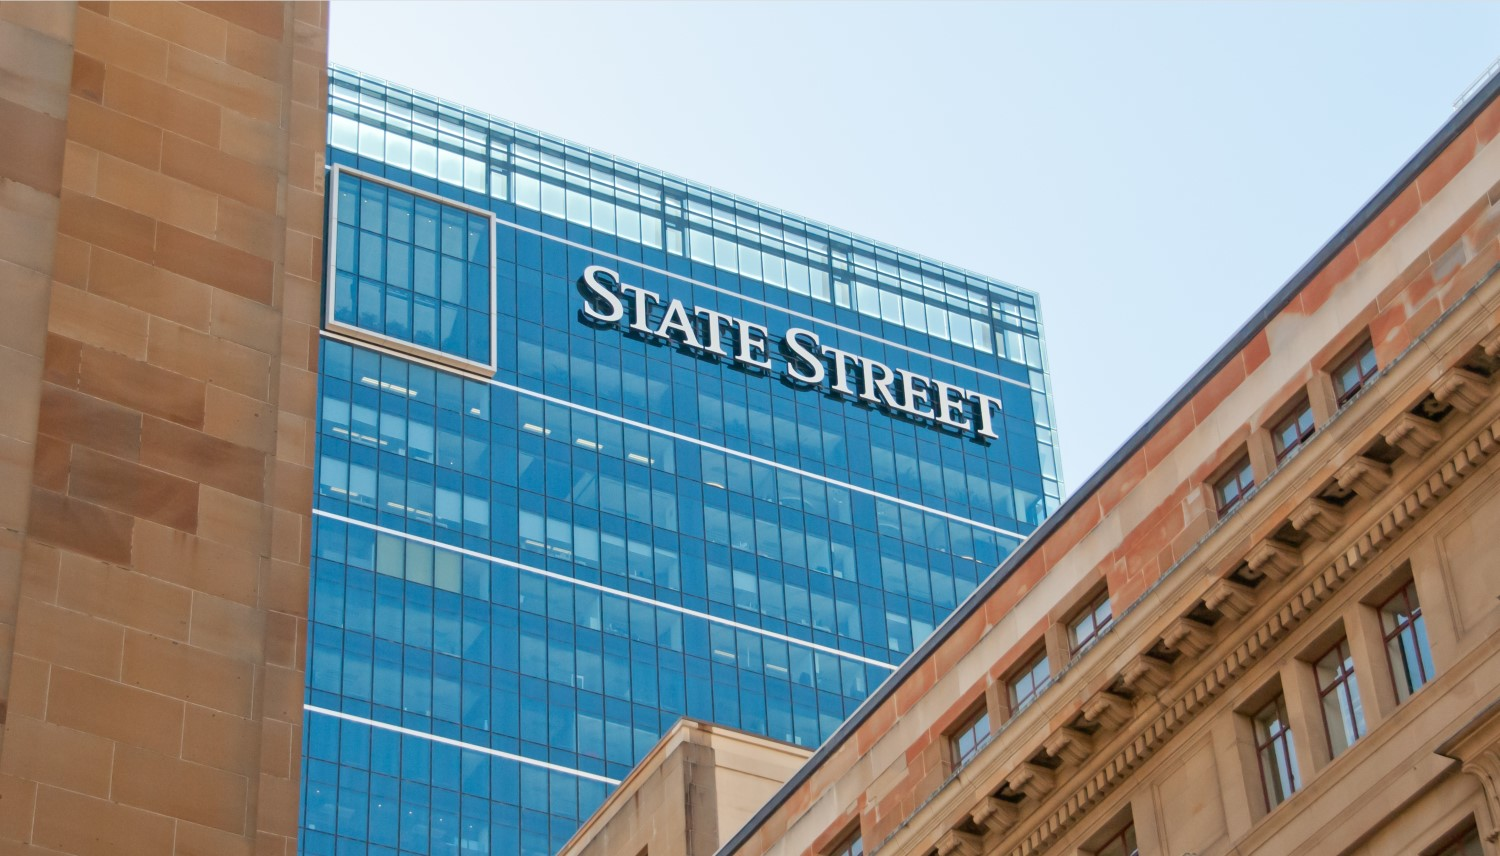 State Street: 38% of Clients Will Put More Money into Digital Assets in 2020